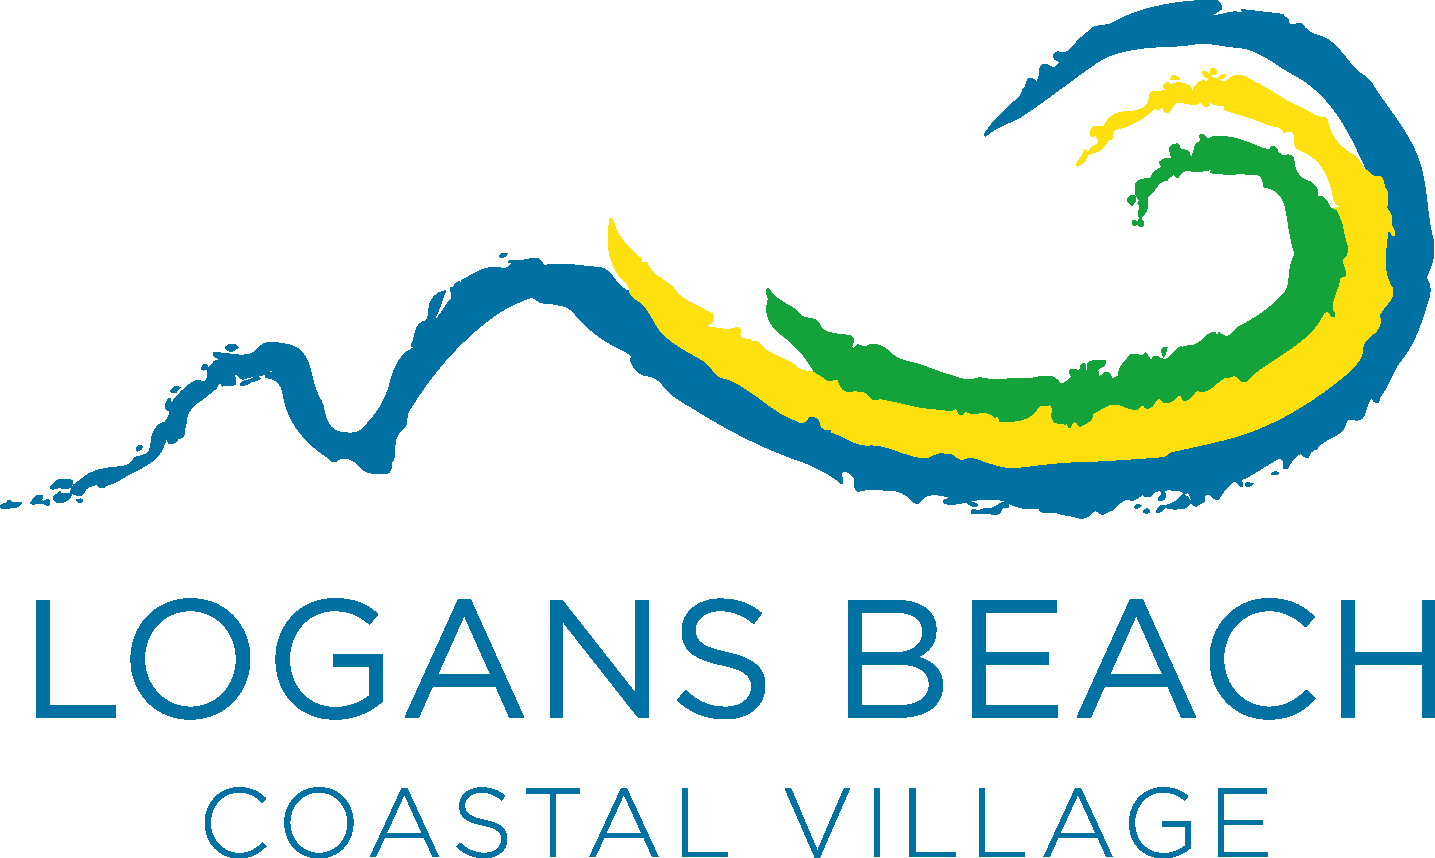 Logans Beach Coastal Village